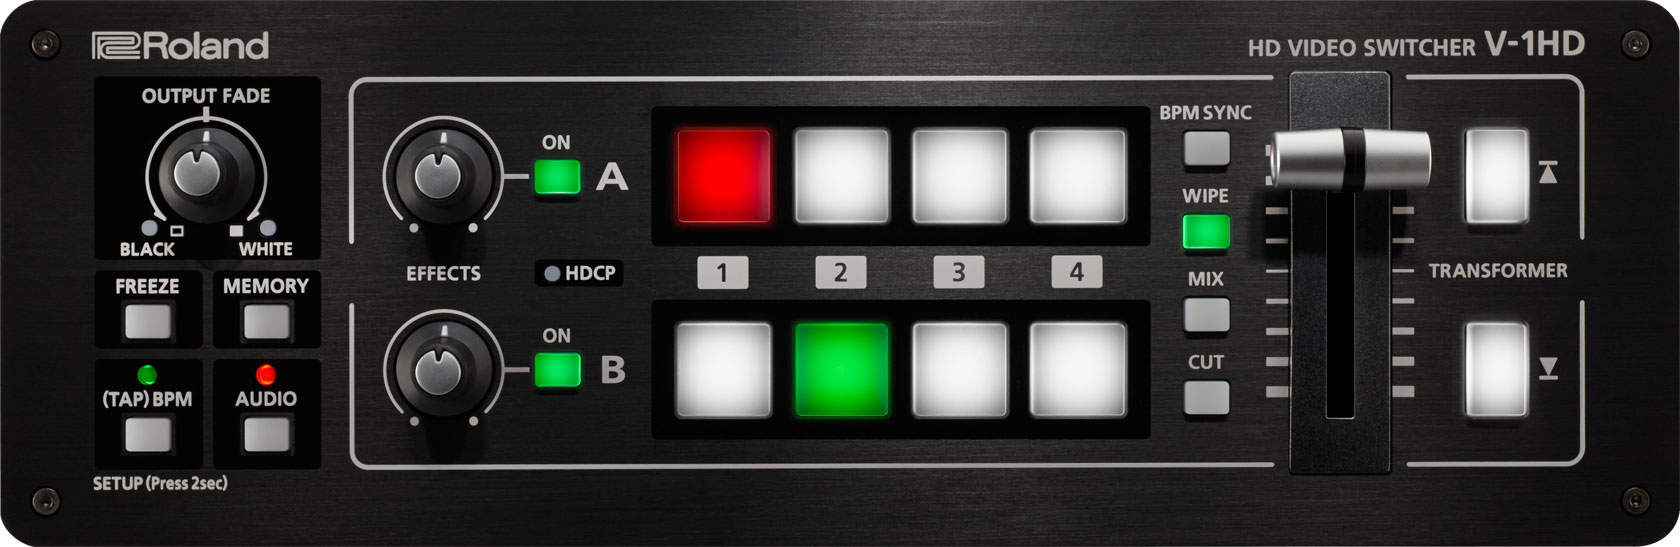 Roland Pro A V 1hd Hd Video Switcher Audio Generator Is Controlled By Light